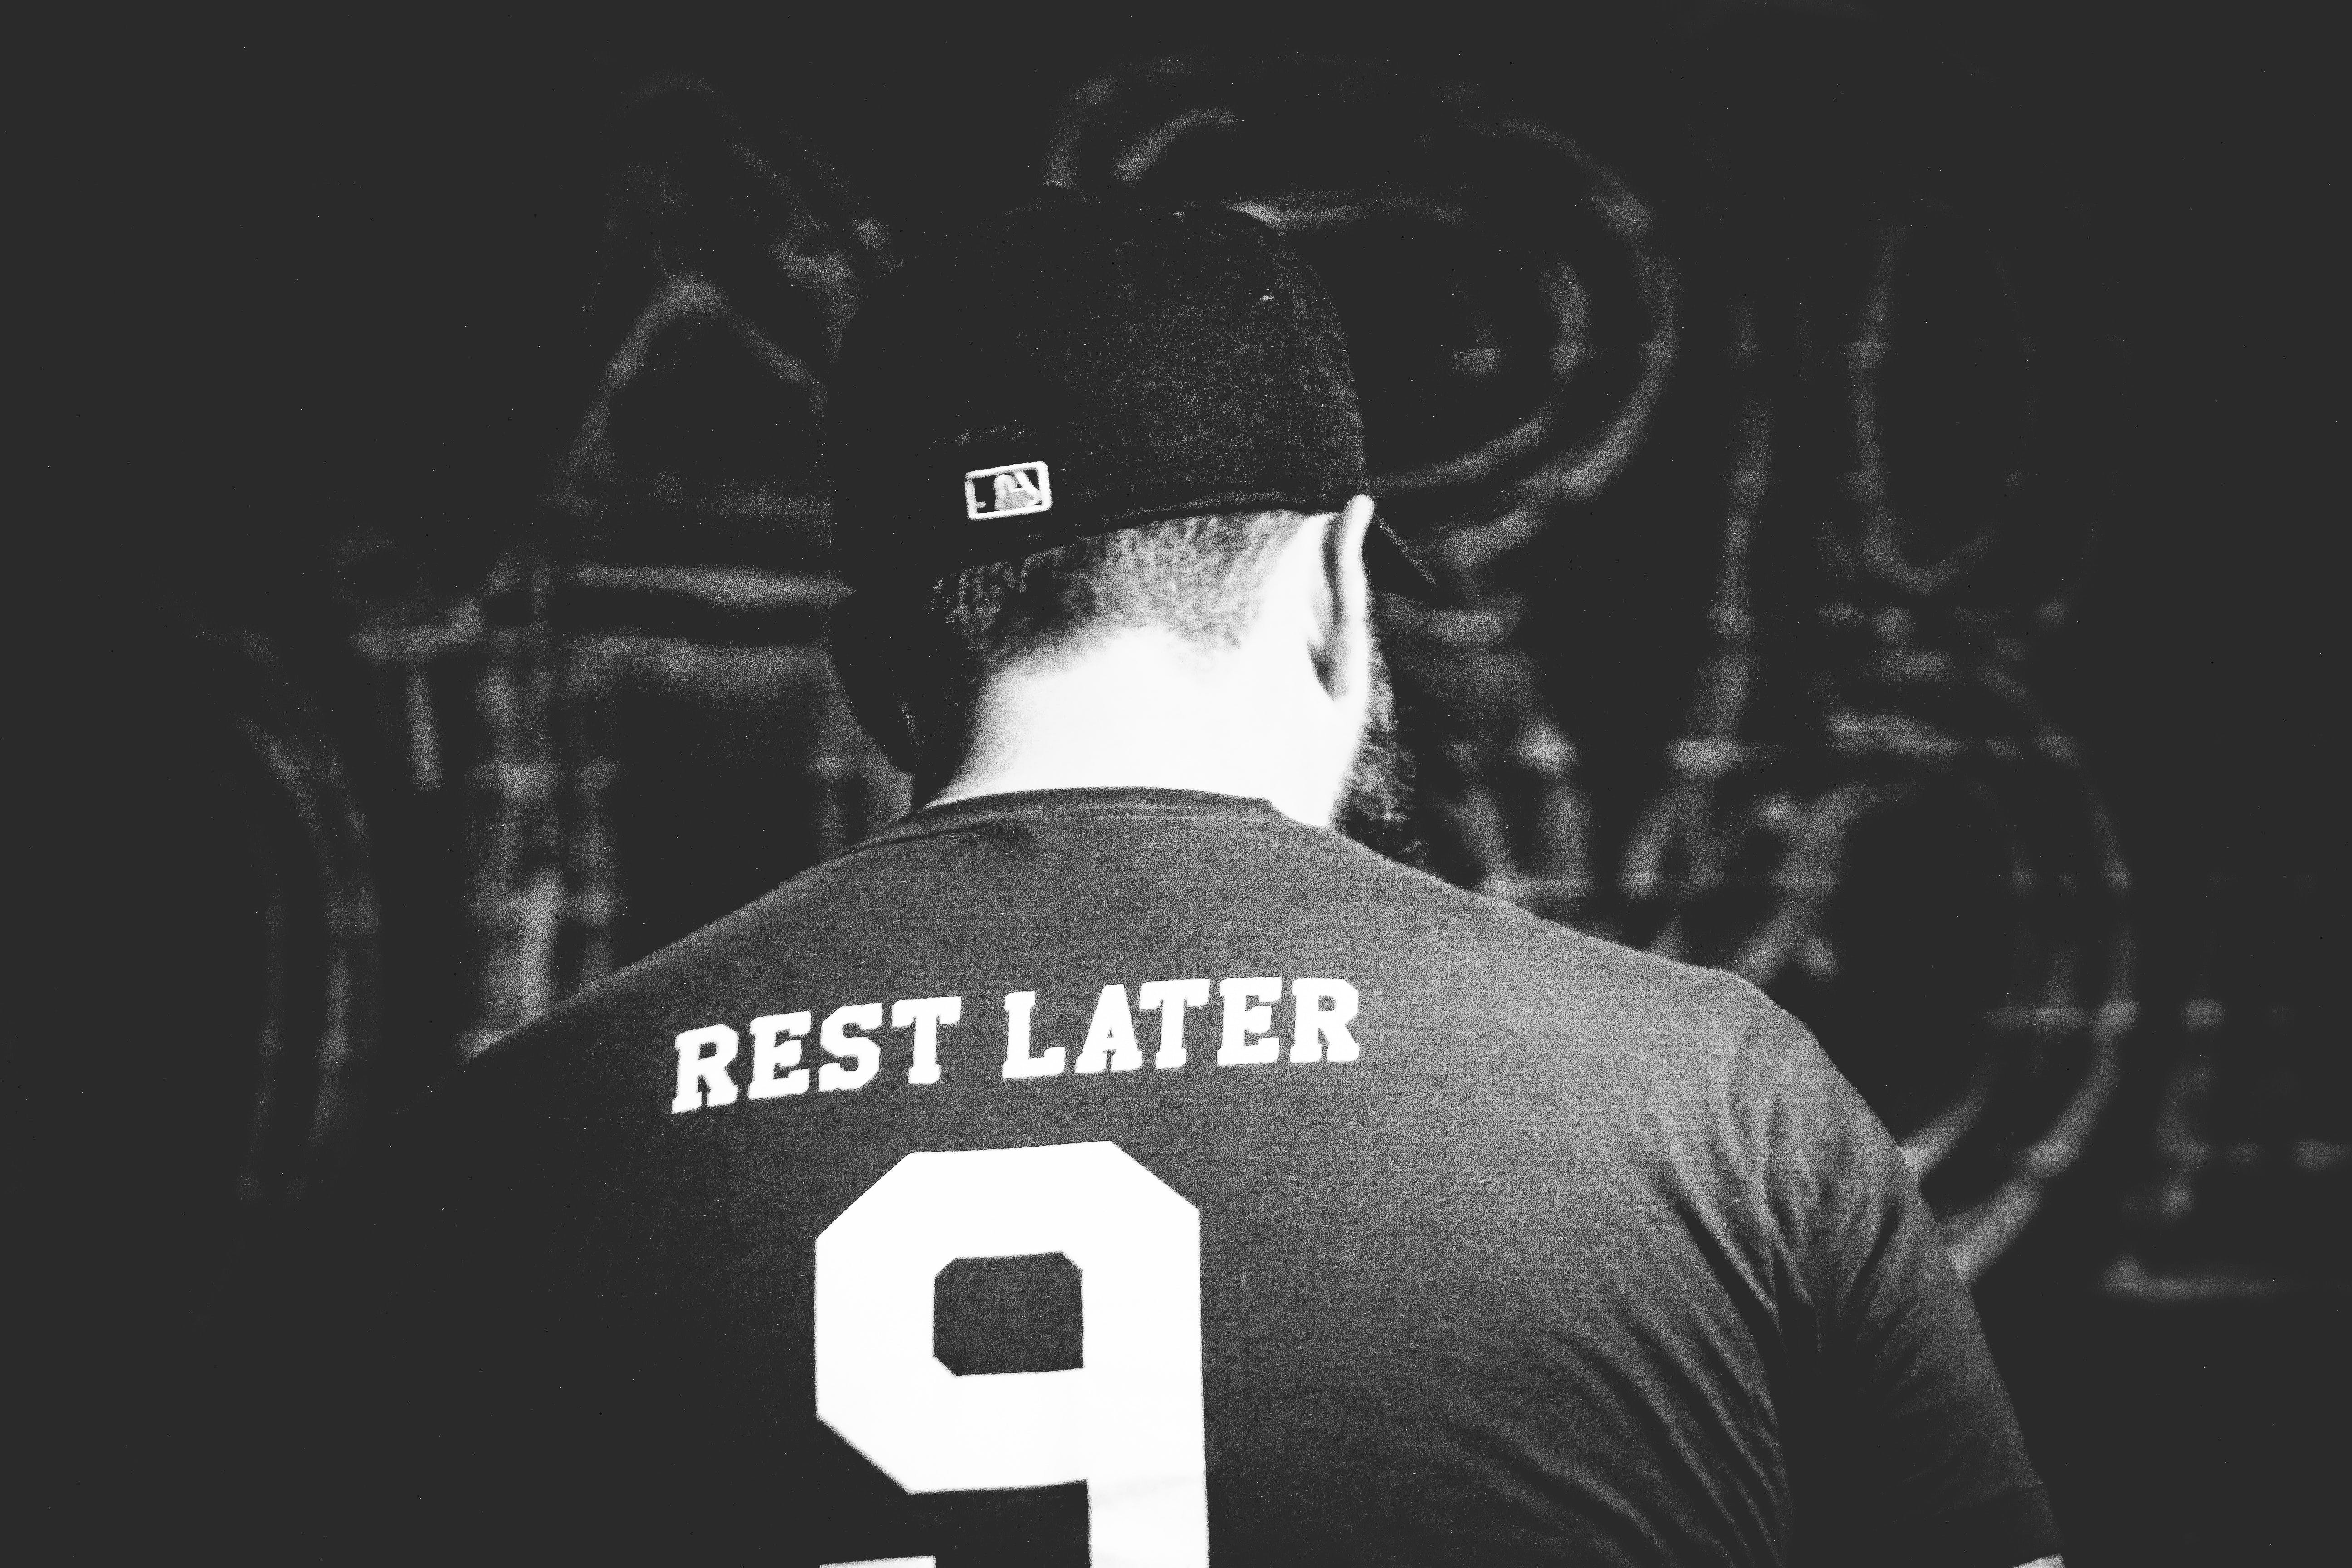 Grayscale Photo of Rest Later 9 Shirt